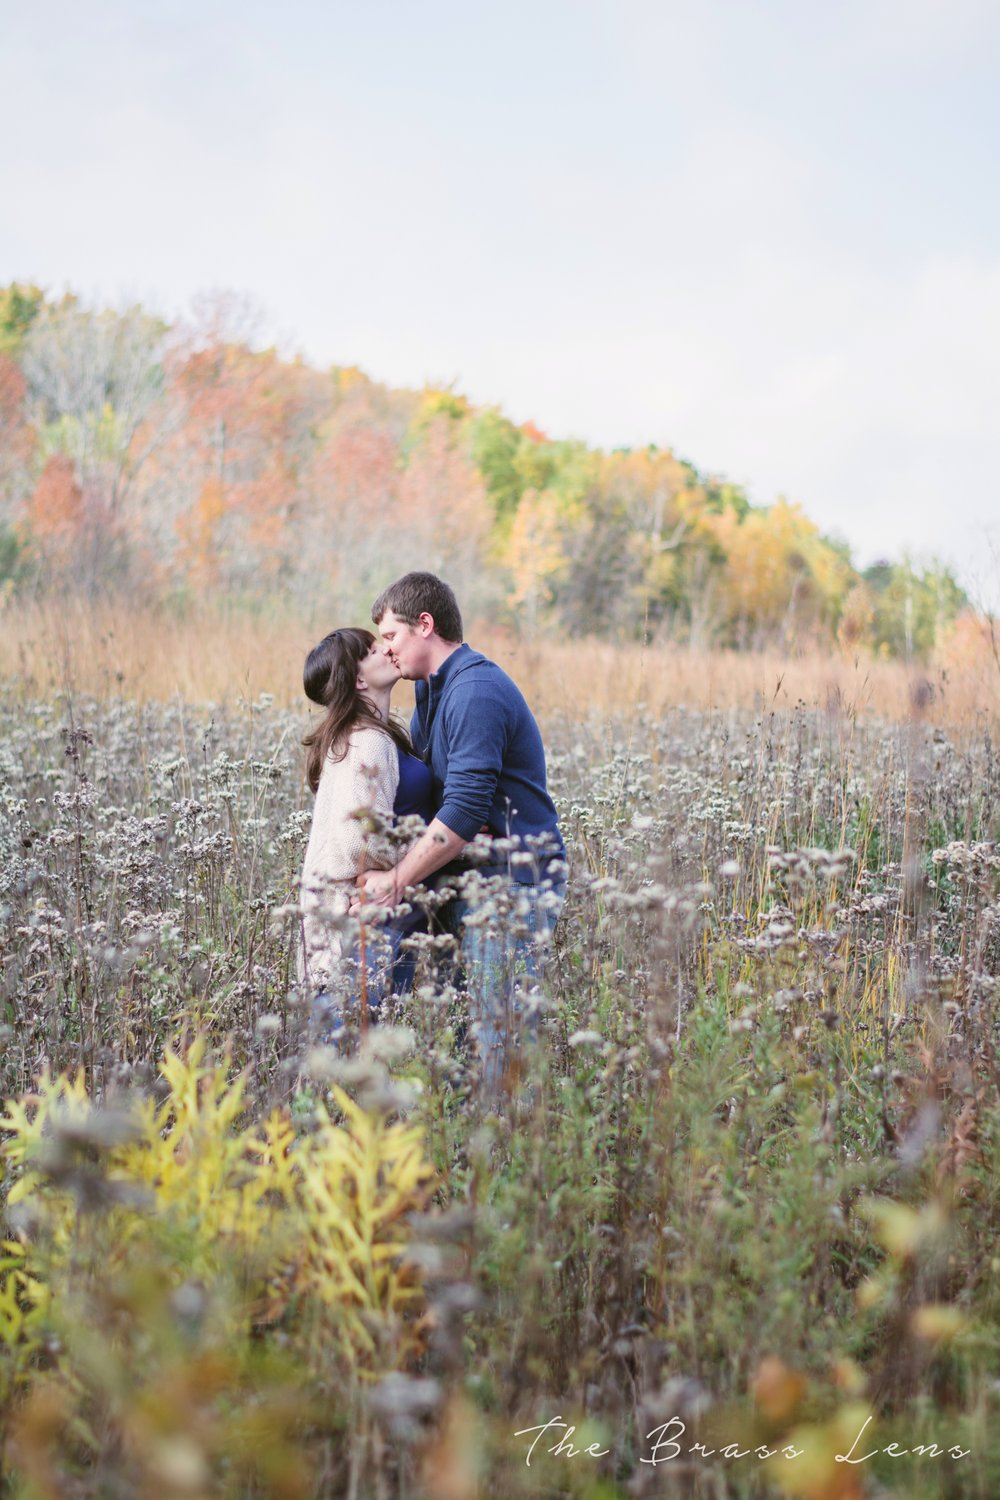 thebrasslens.greenabyweddingphotographer.wisconsinweddingphotographer.deperephotographer.greenbayfamilyphotographer.greenbayminisessions.